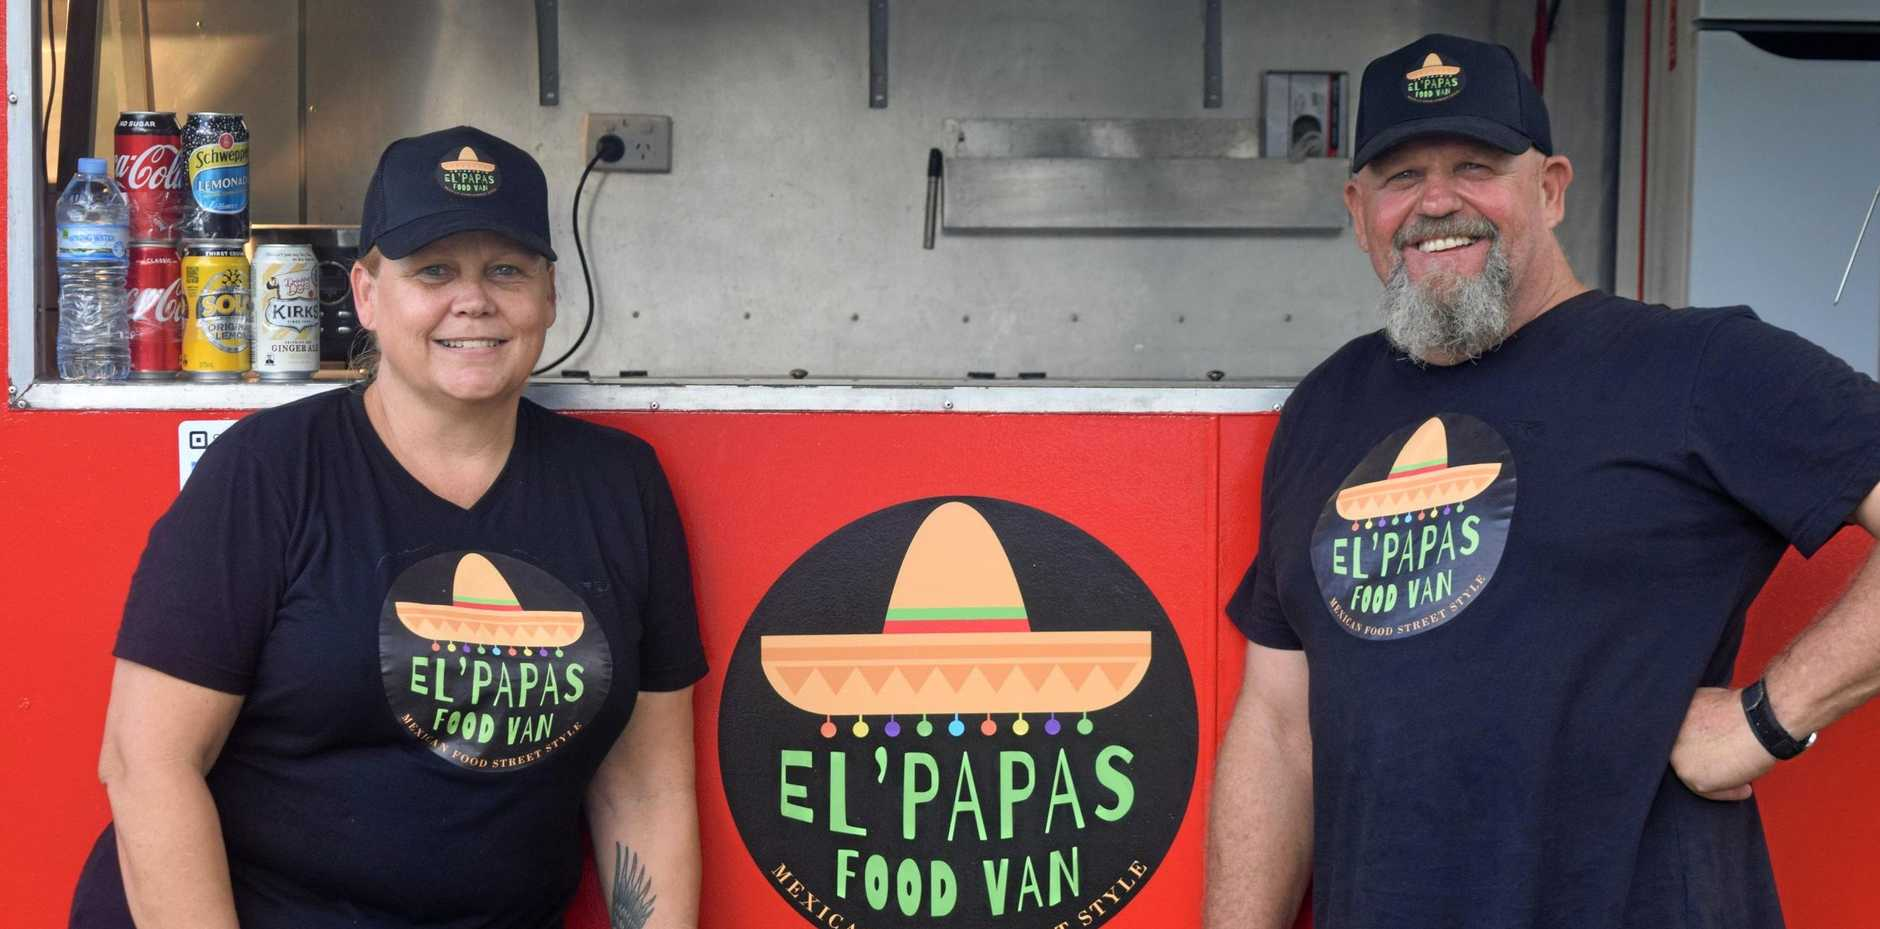 NEXT STEP: El Papas owners Mandy and Francis Shanks are planning to open a takeaway store in the near future.